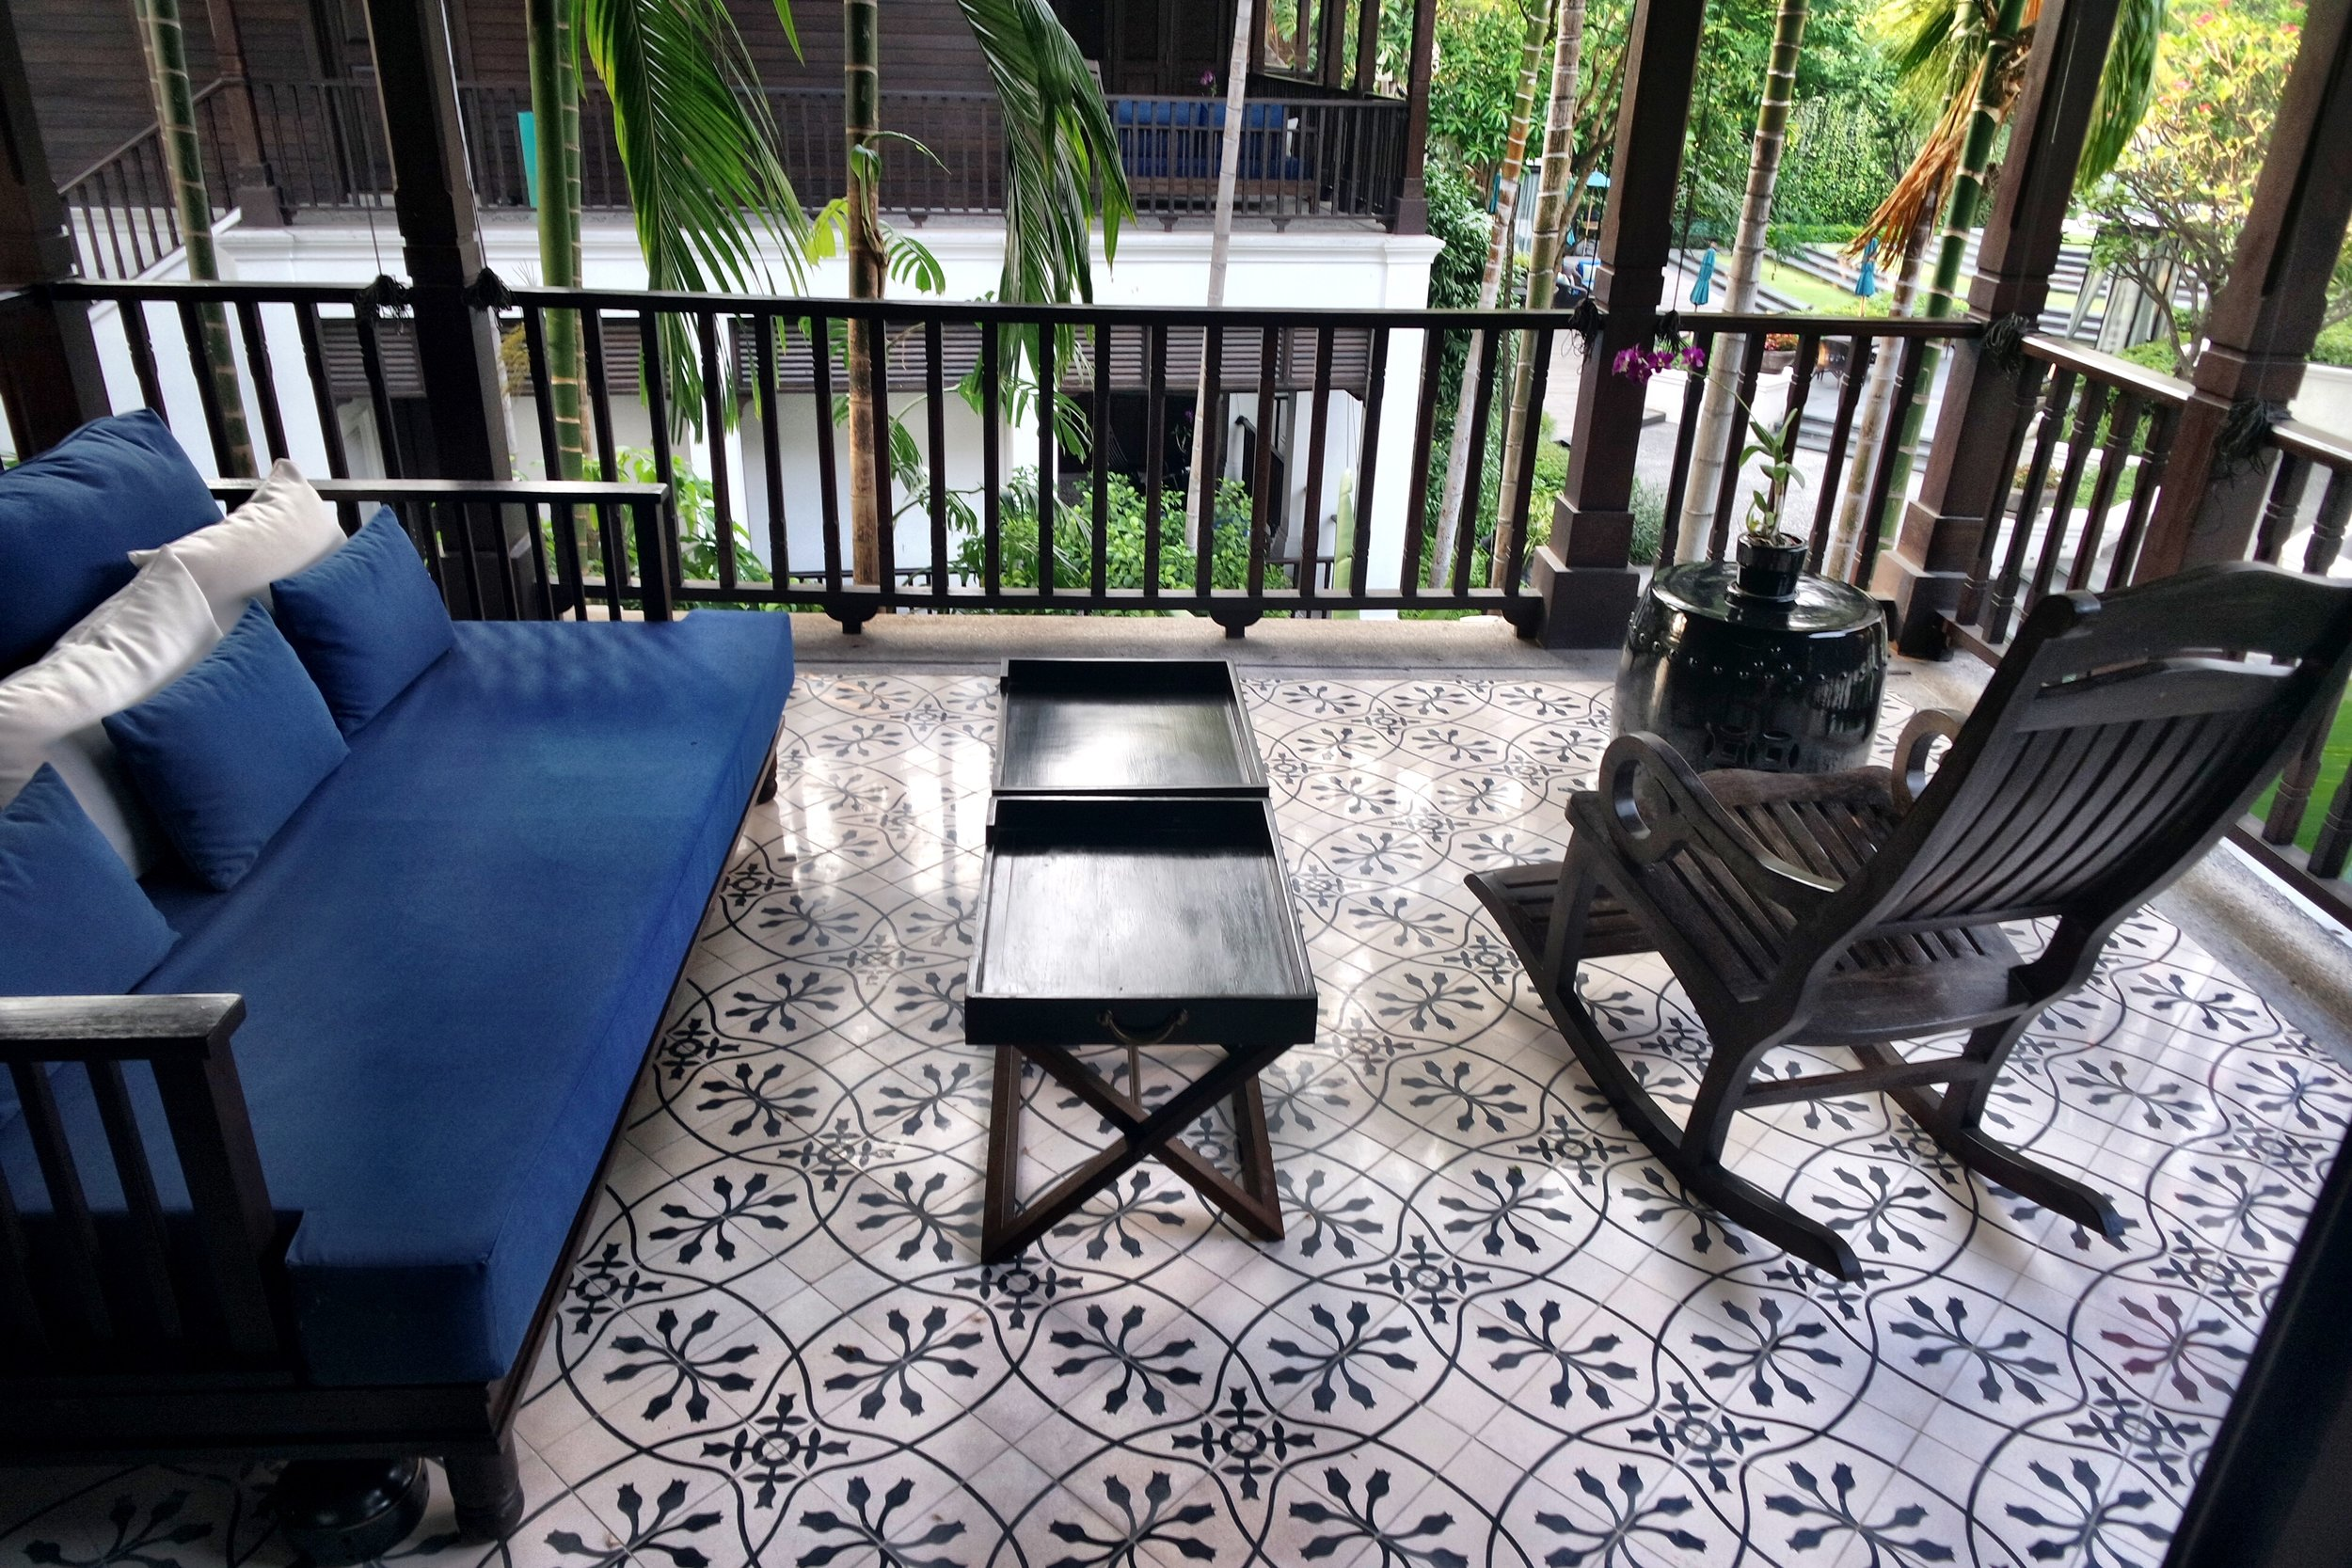 The charming porch is a highlight of the Rajah Brooke Suite